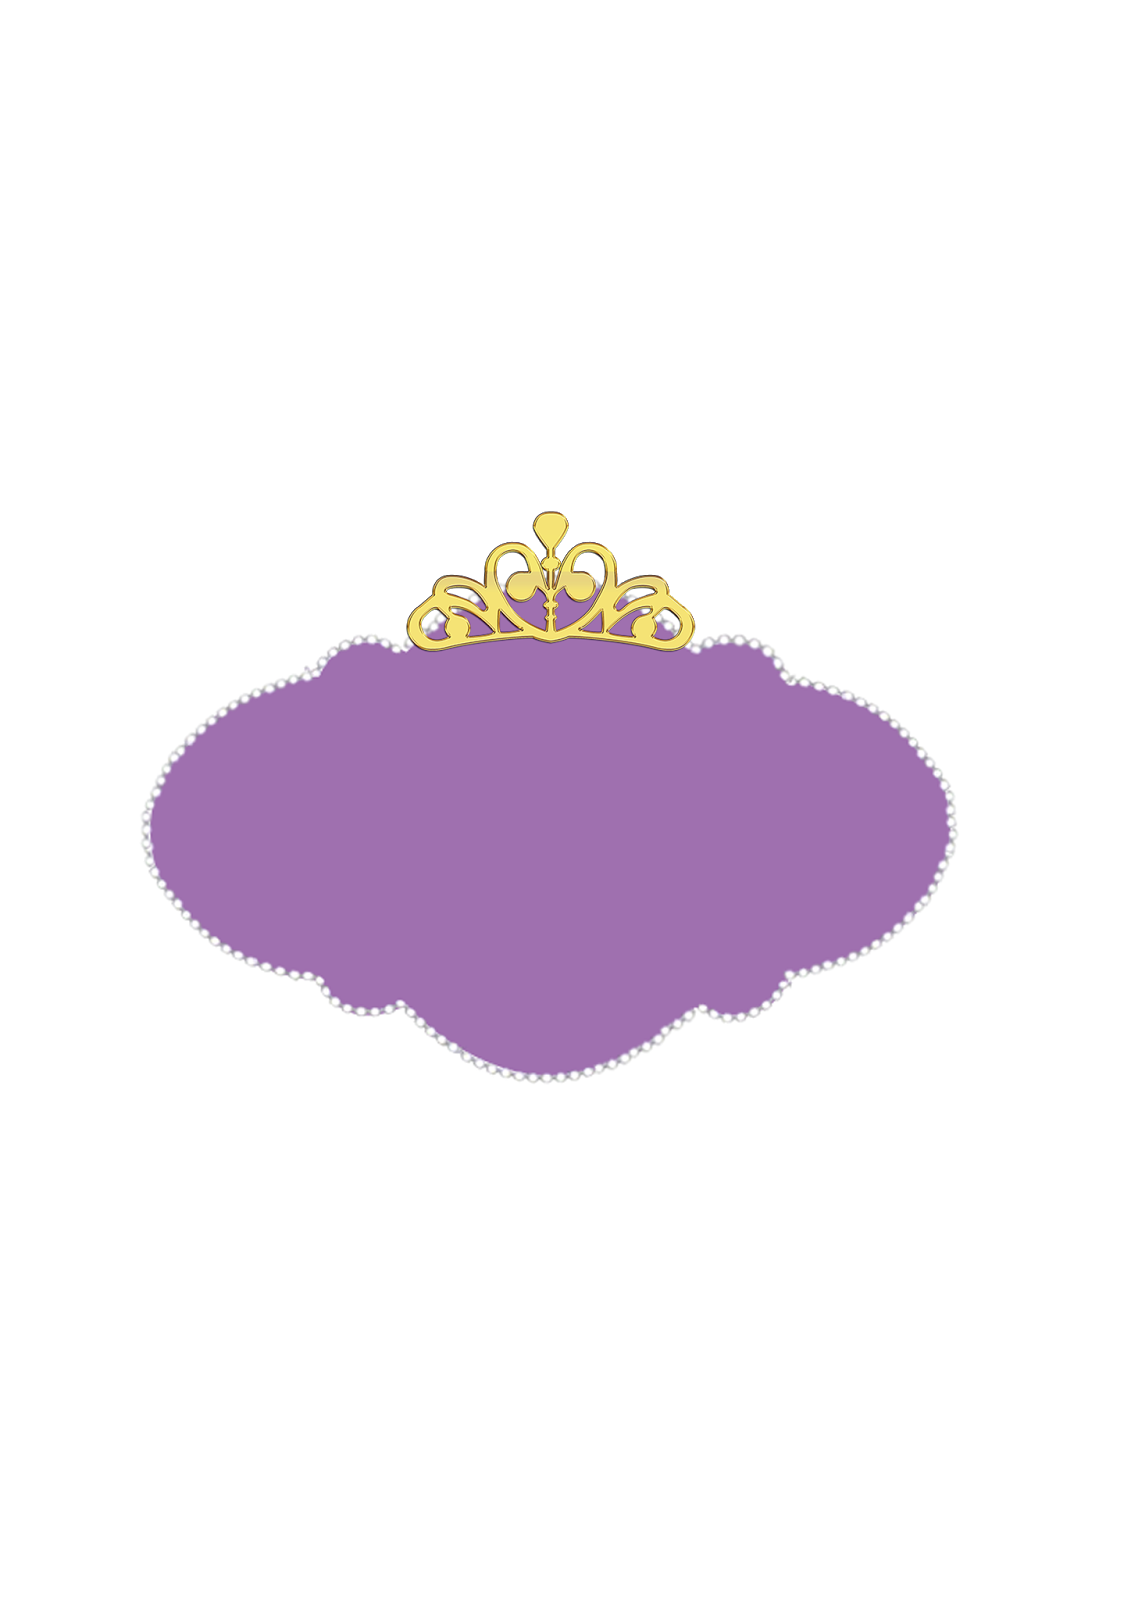 Crown clipart princess graphic royalty free stock Princess Crown Clipart | Clipart | Pinterest graphic royalty free stock